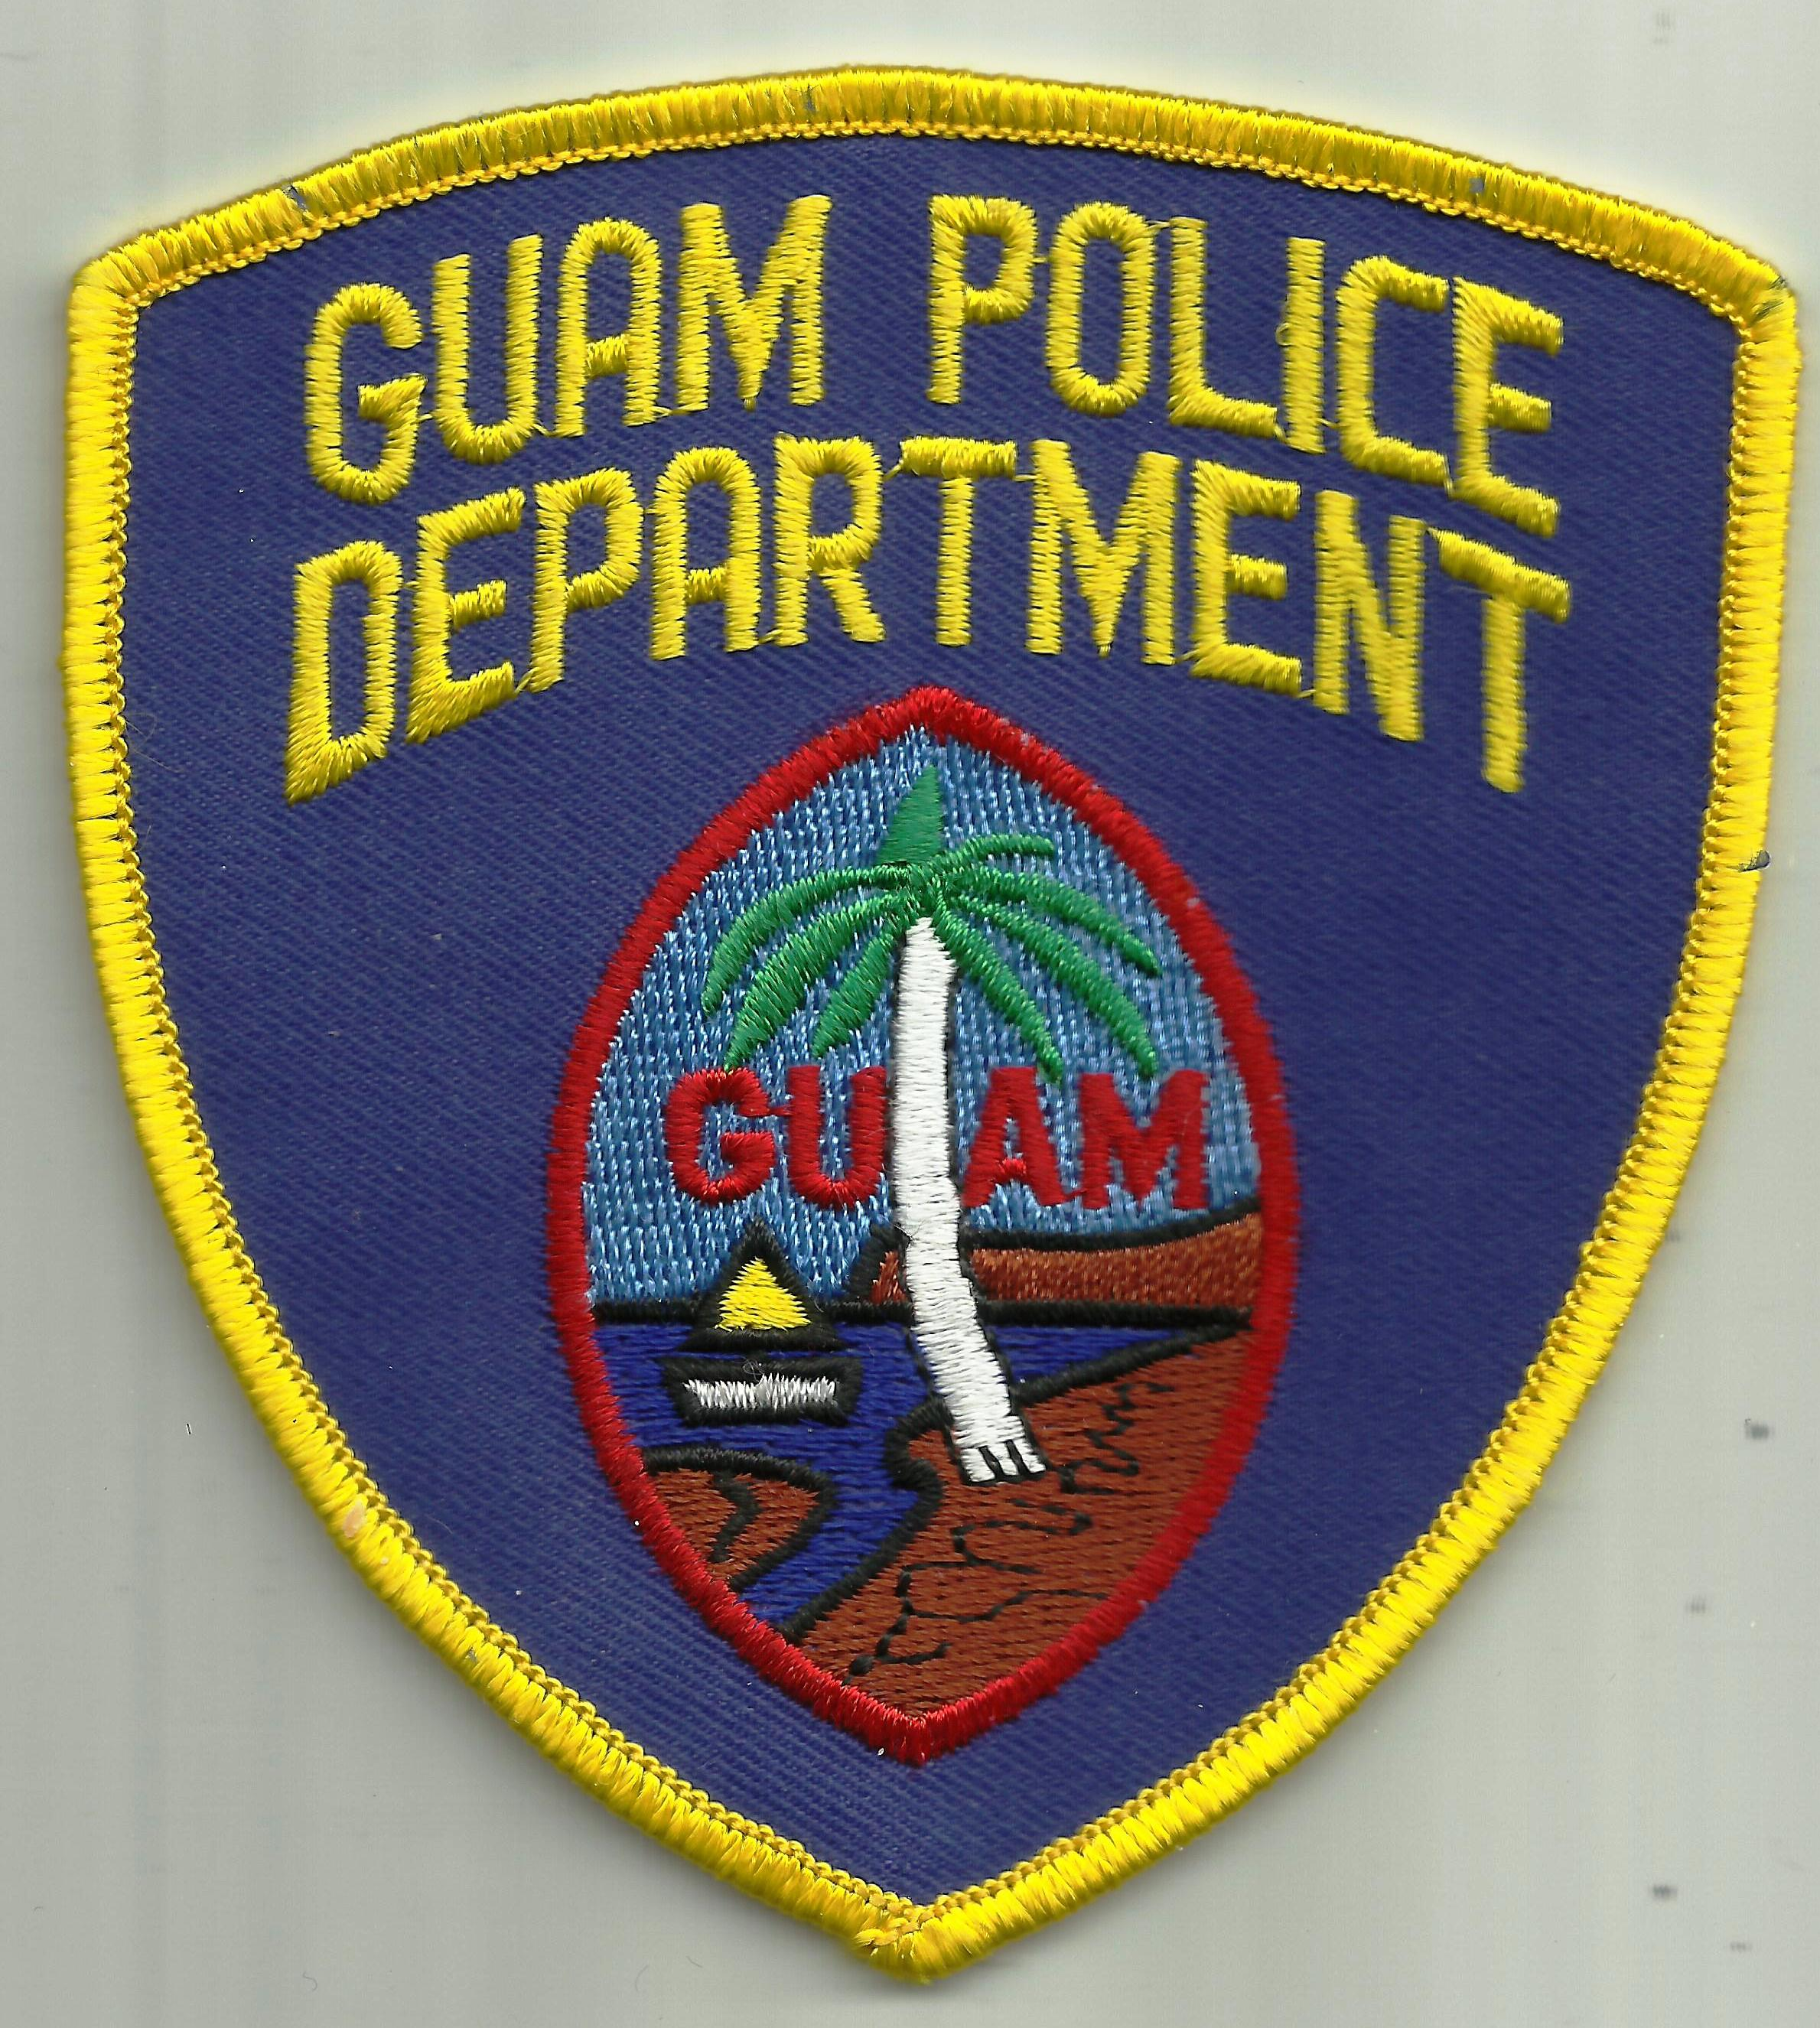 Virgin Islands Police Department Most Wanted